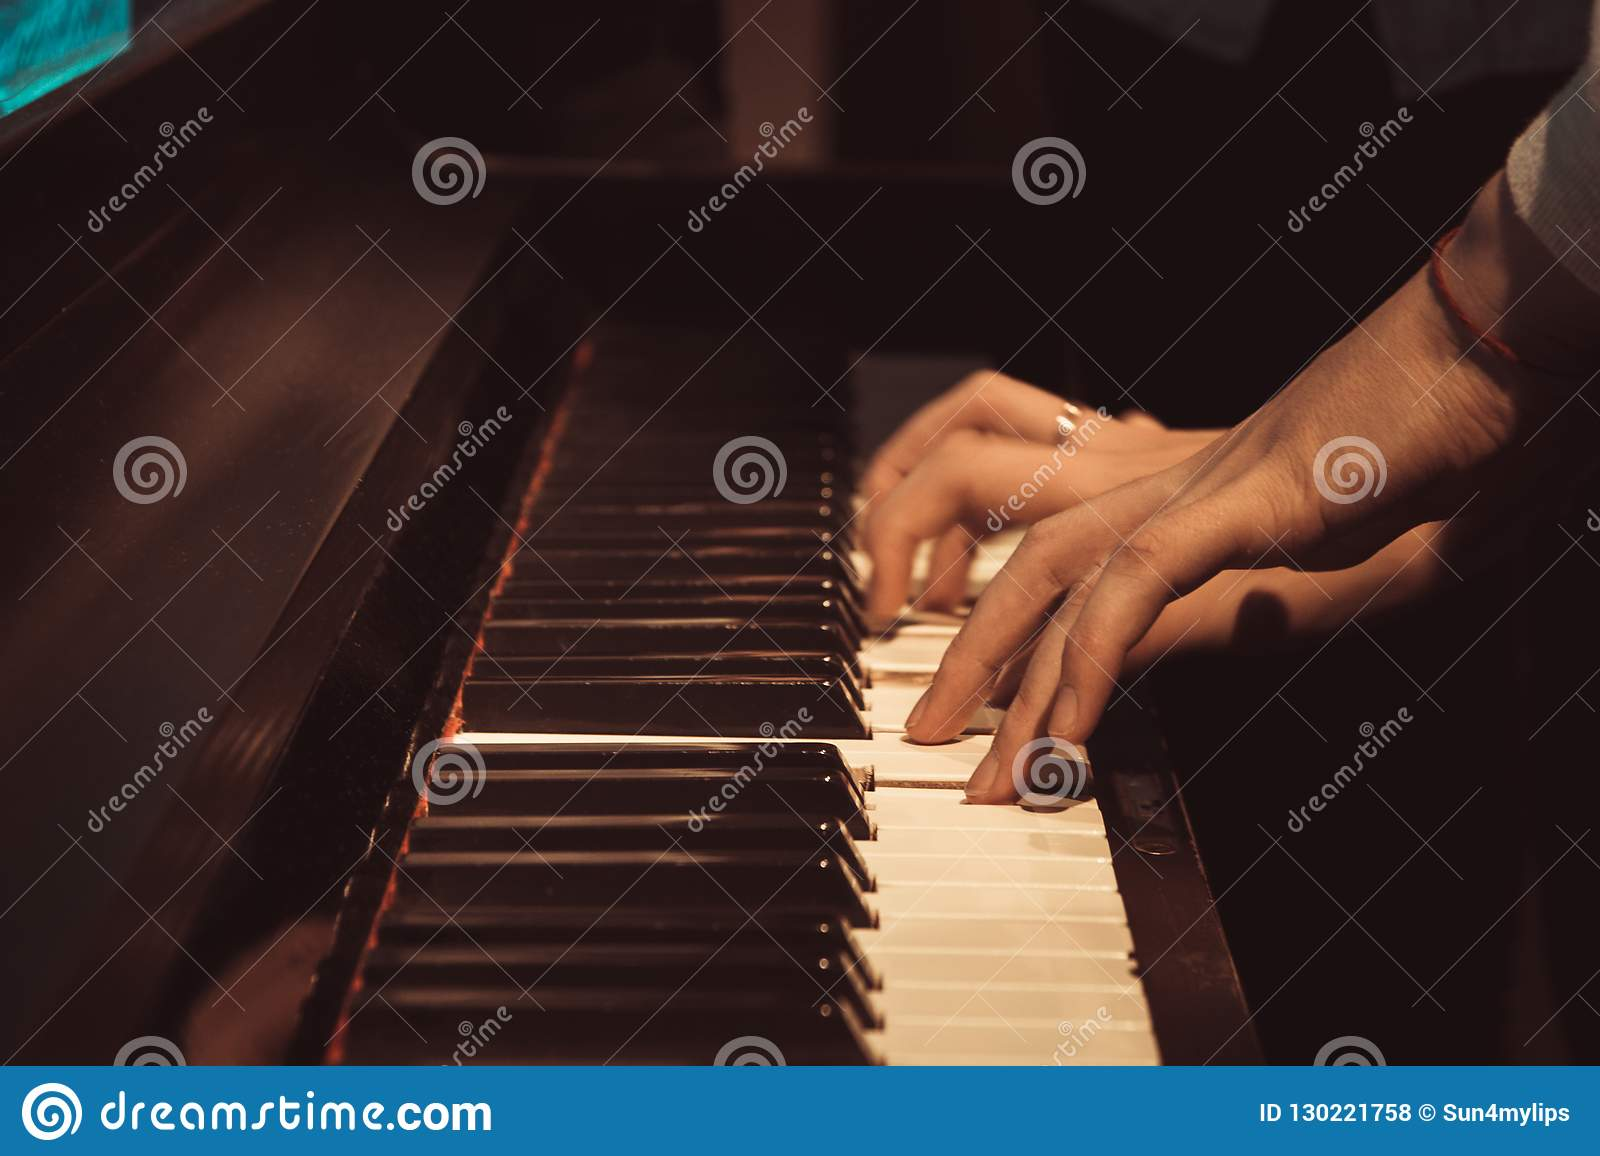 Women`s hands on the piano keys, playing a melody